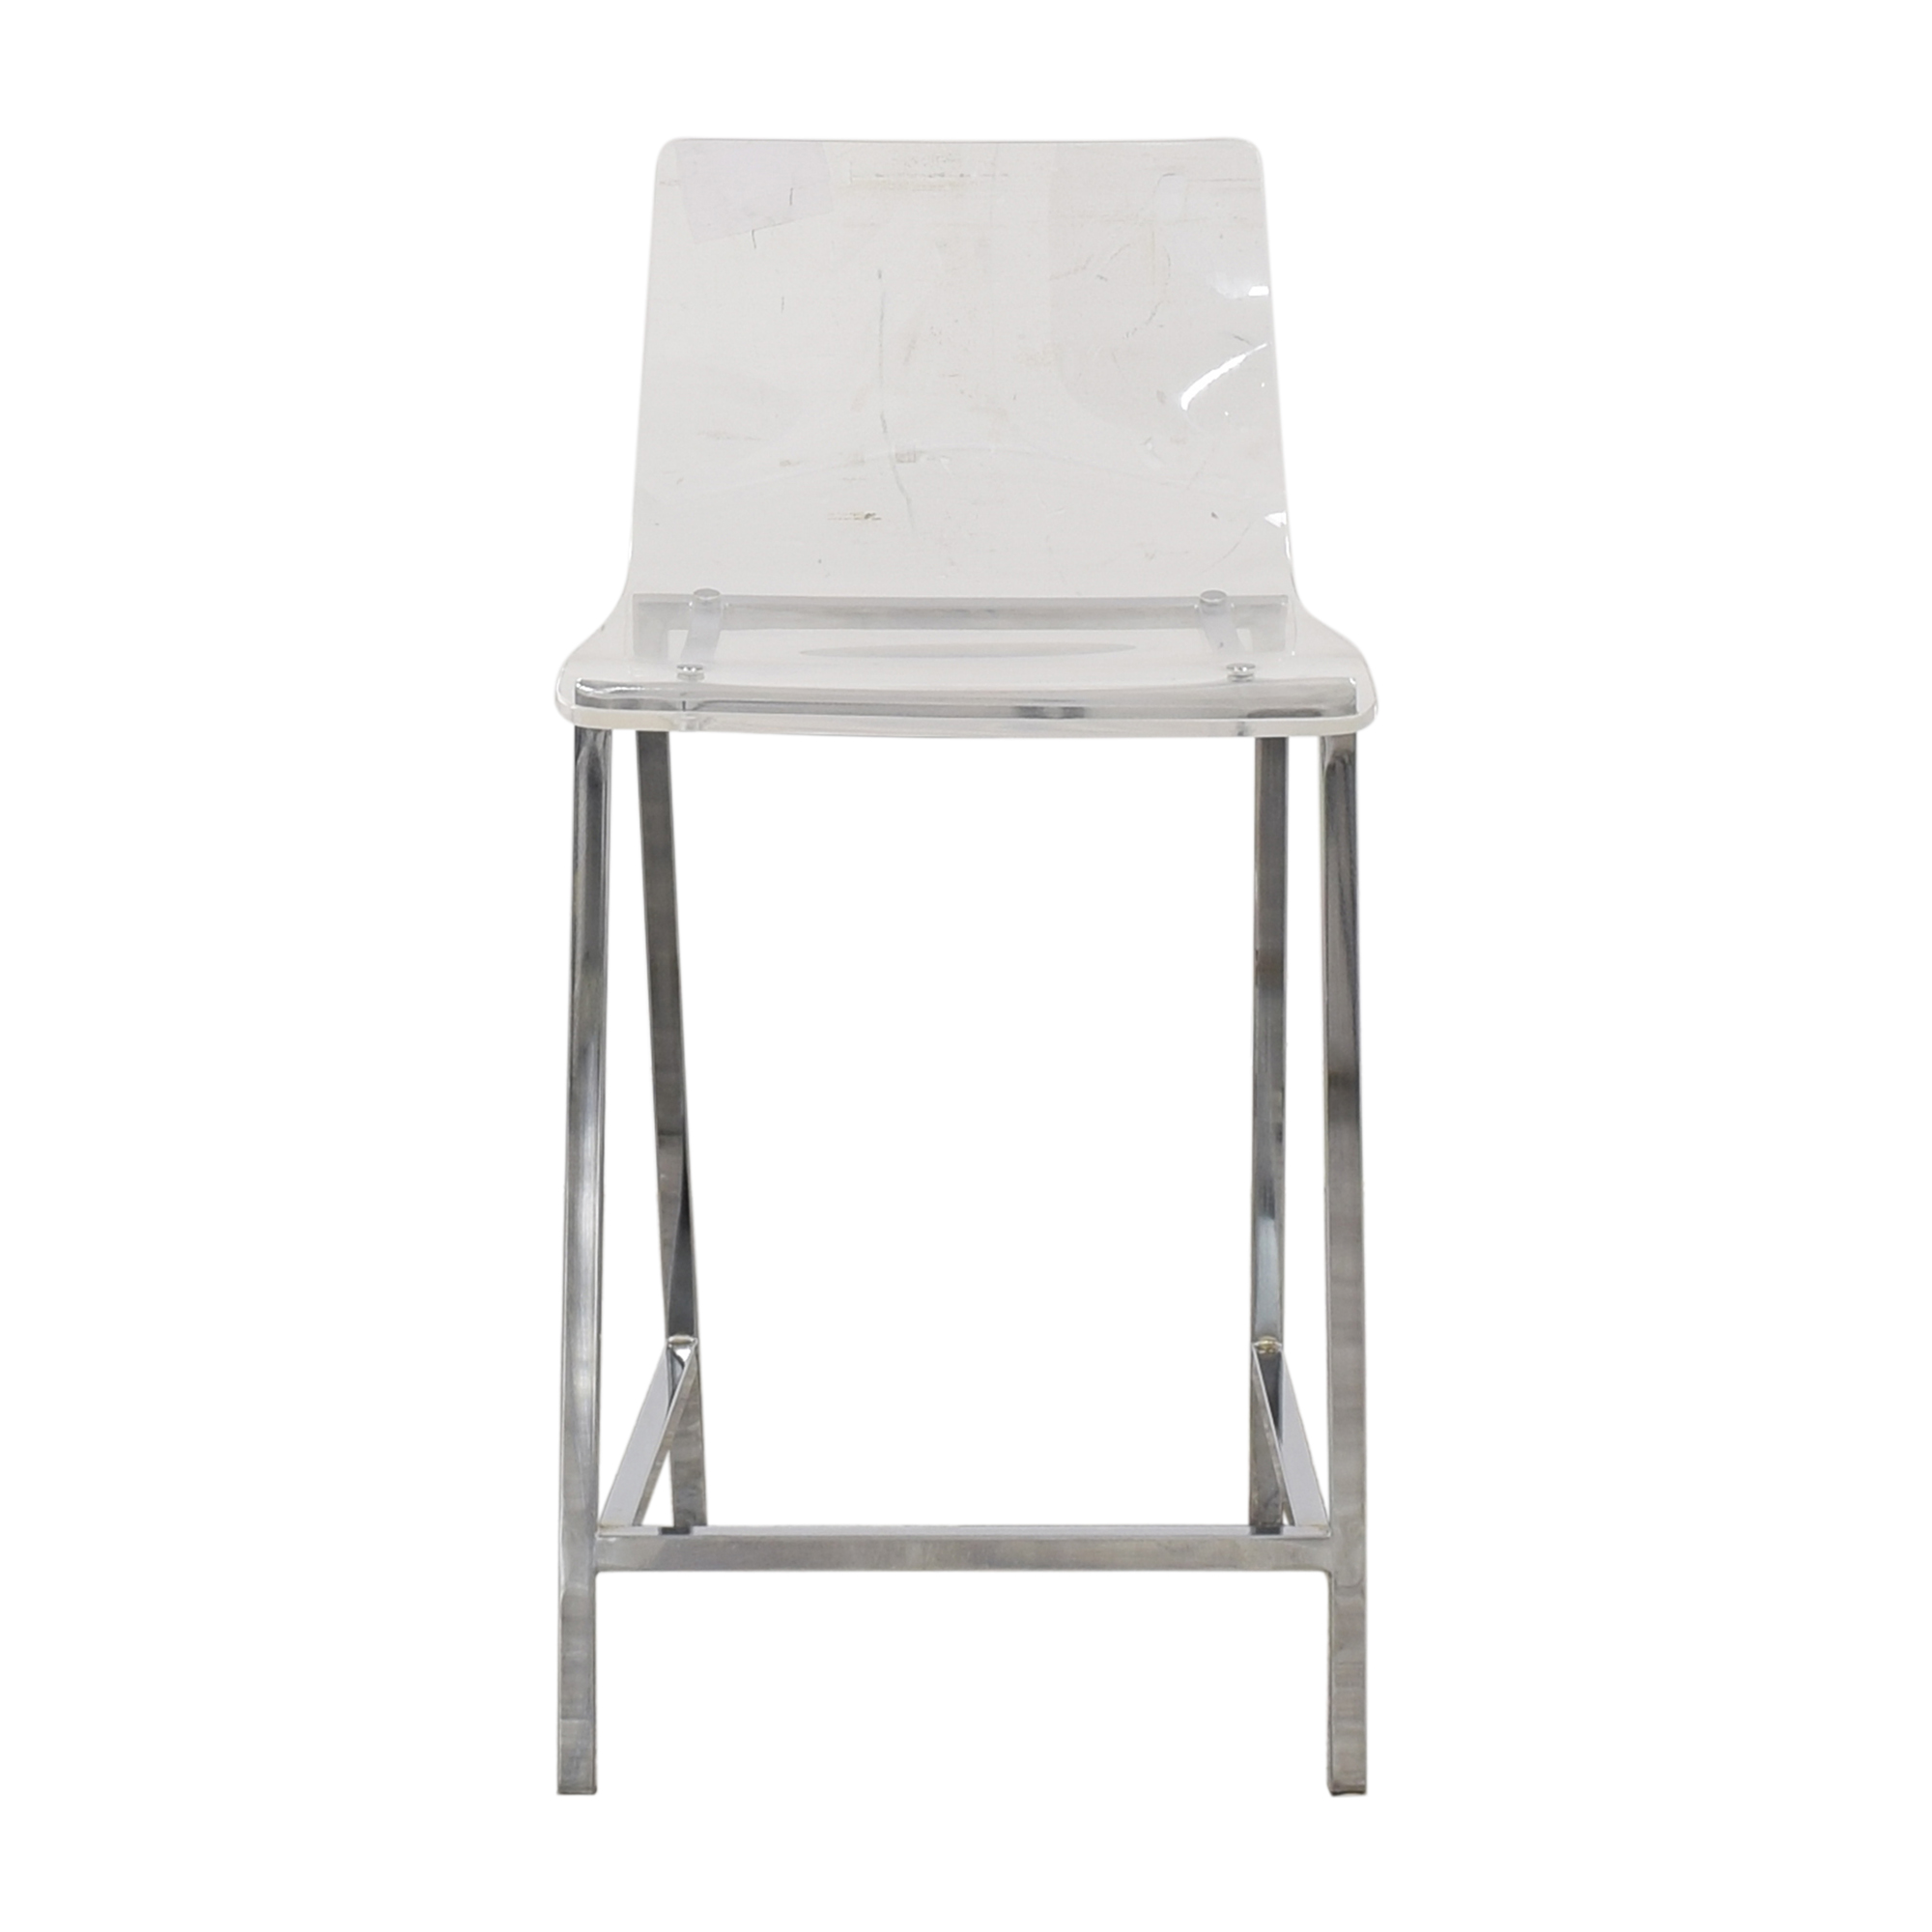 CB2 CB2 Chiaro Clear Counter Stool dimensions